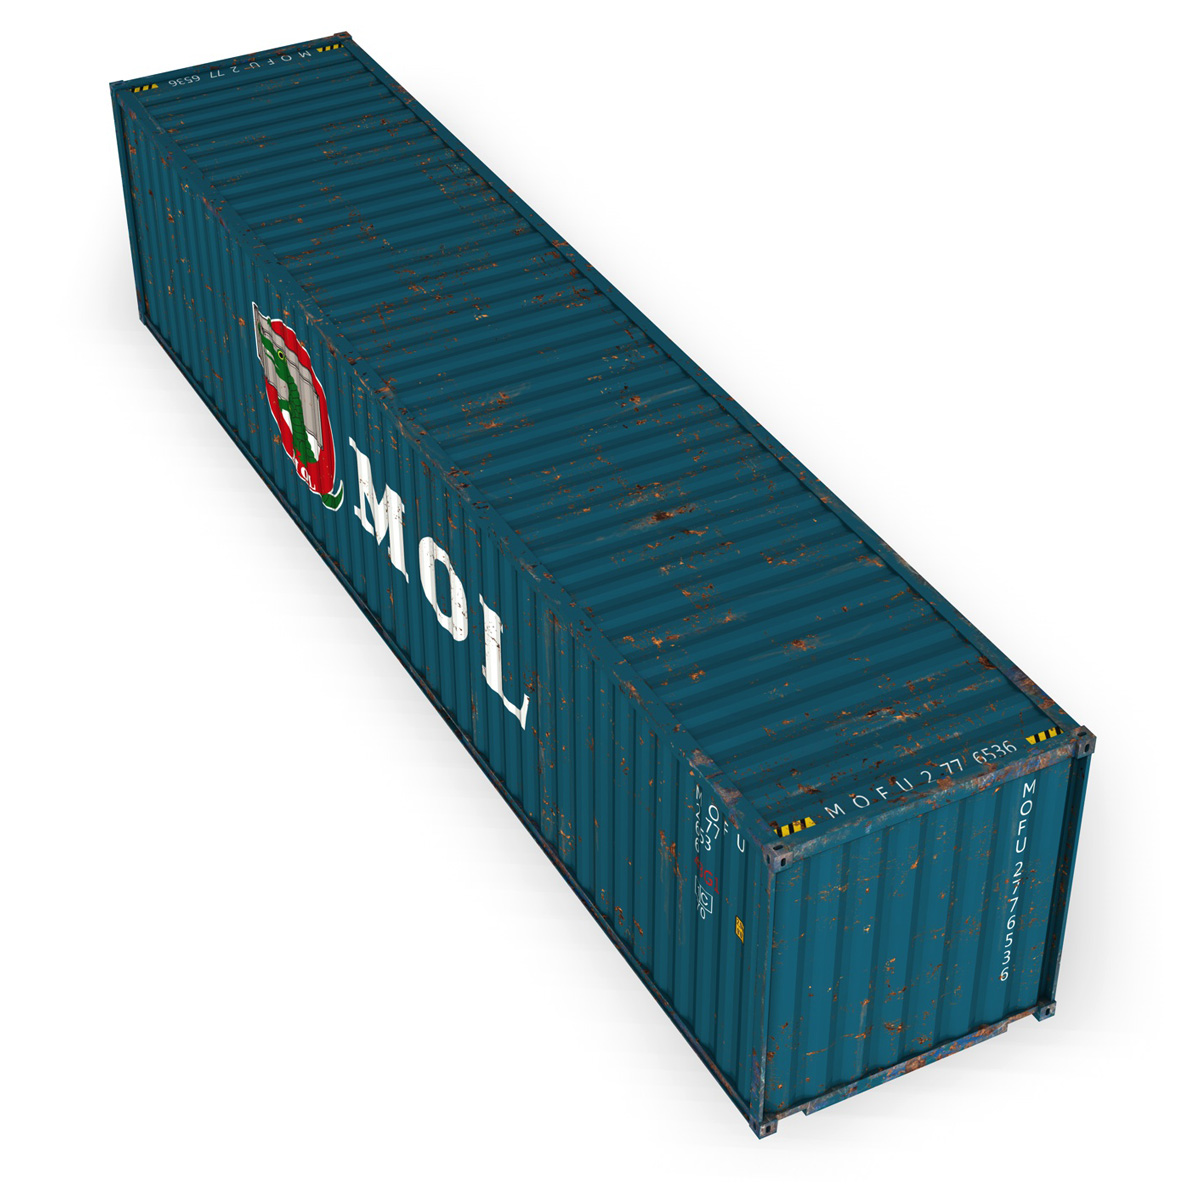 40ft shipping container – mol 3d model 3ds fbx lwo lw lws obj c4d 265138